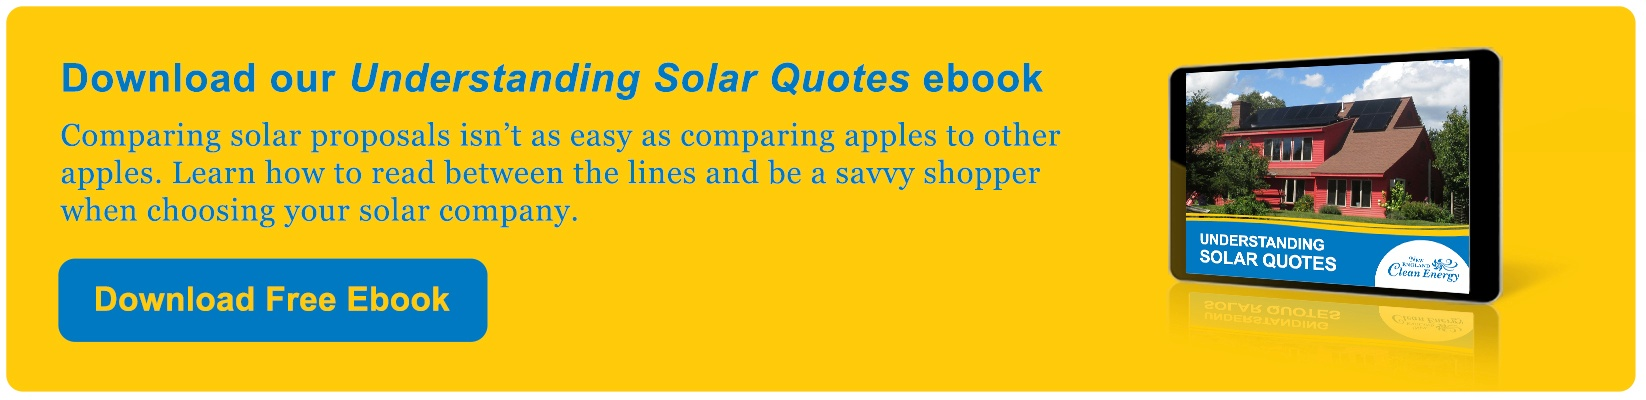 Download our Understanding Solar Quotes ebook to learn how ro compare solar proposals and be a savvy shopper when choosing your solar company.